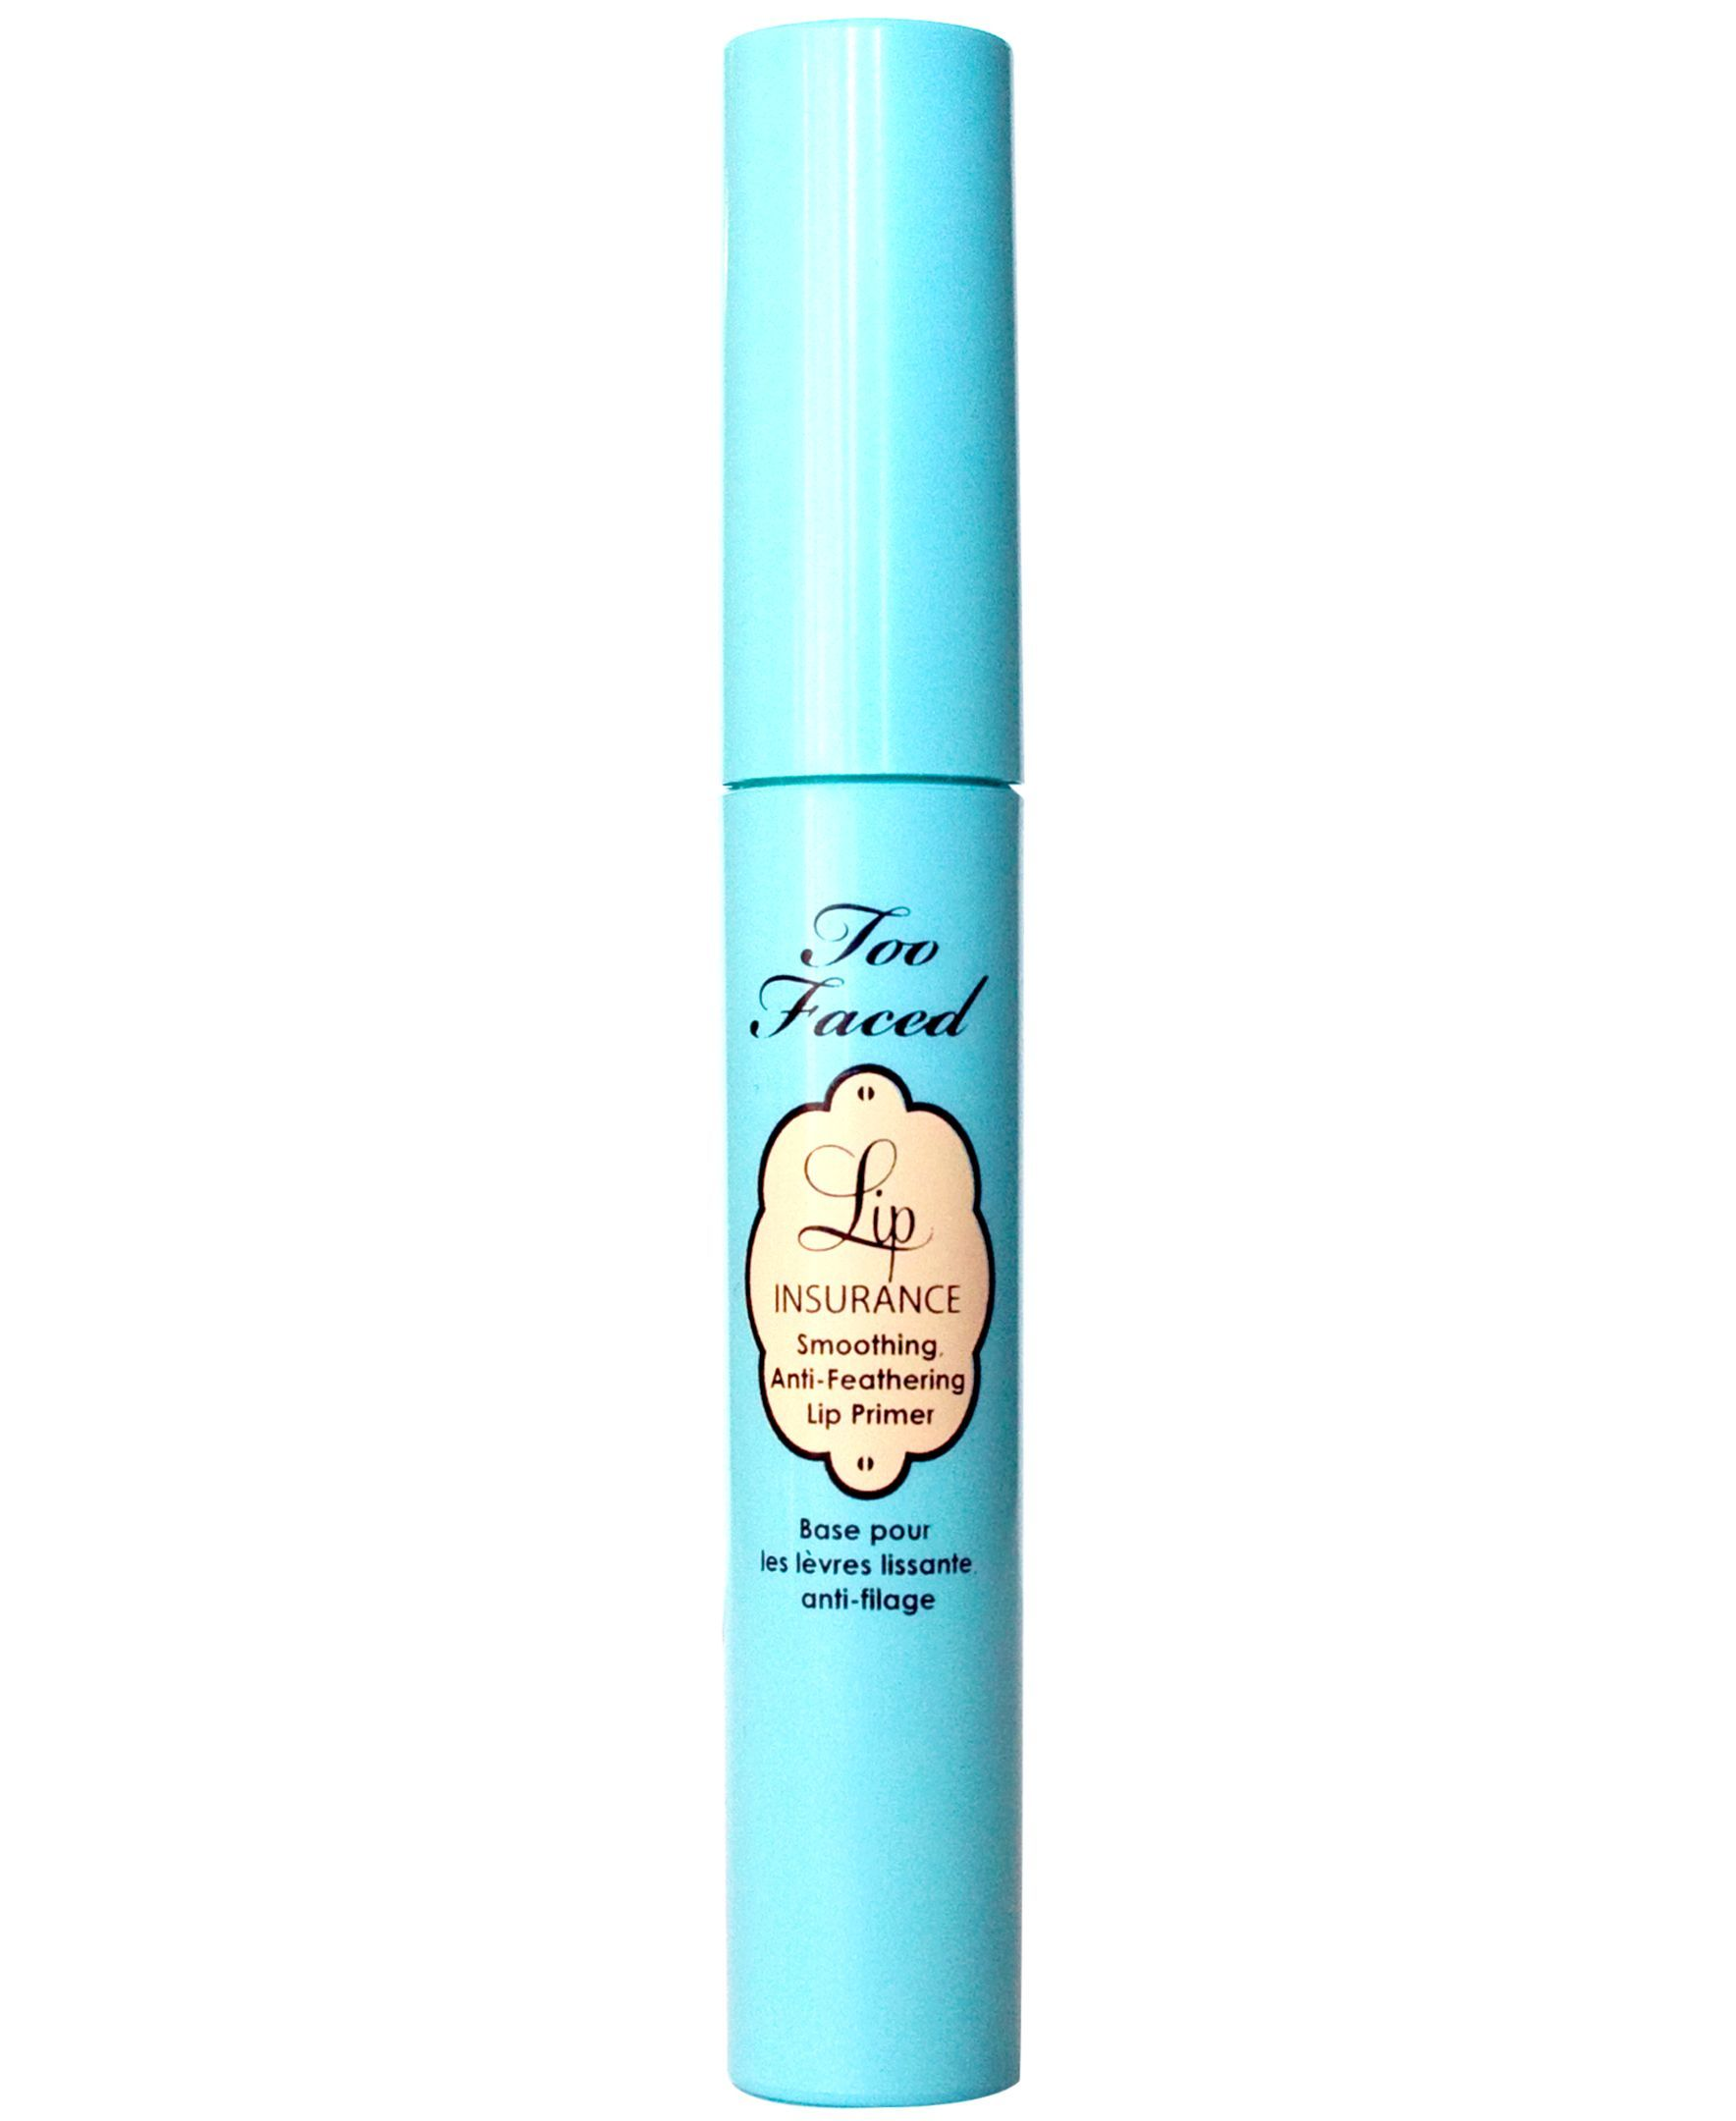 Too Faced Lip Insurance Smoothing AntiFeathering Lip